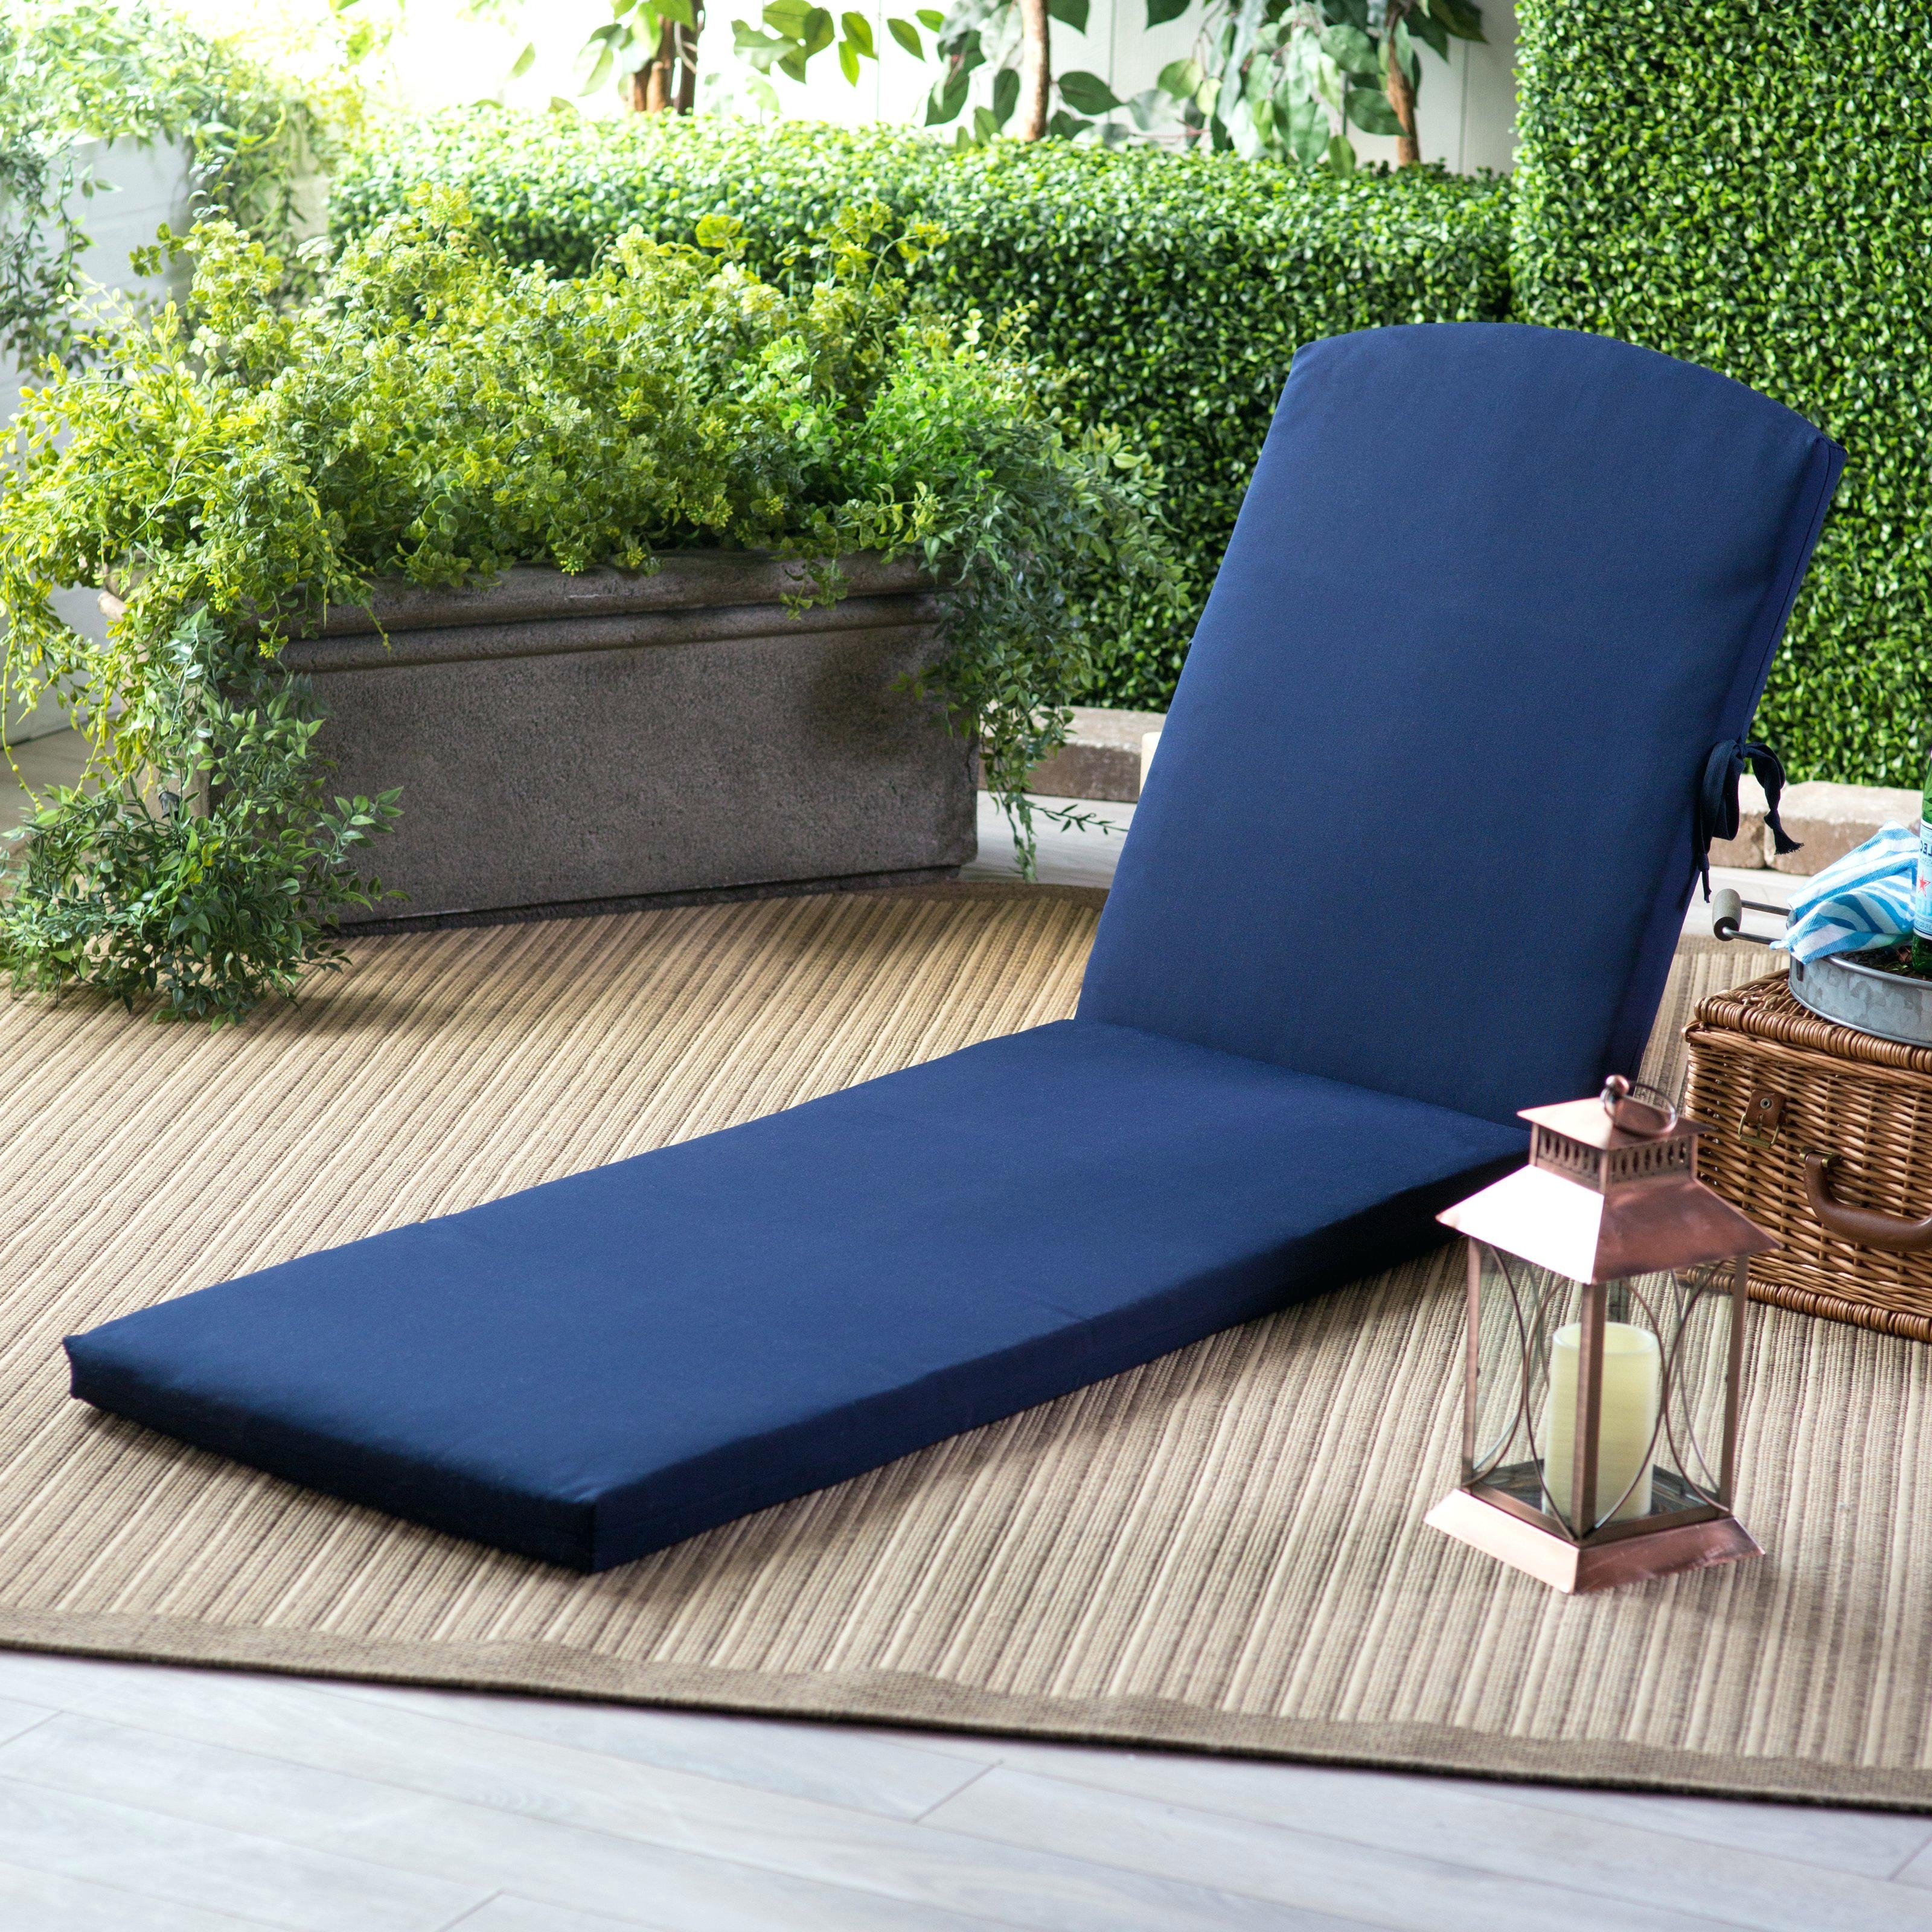 Orbit Chaise Lounges Throughout Trendy Orbit Chaise Lounge Replacement Cushions – Mariaalcocer (View 11 of 15)